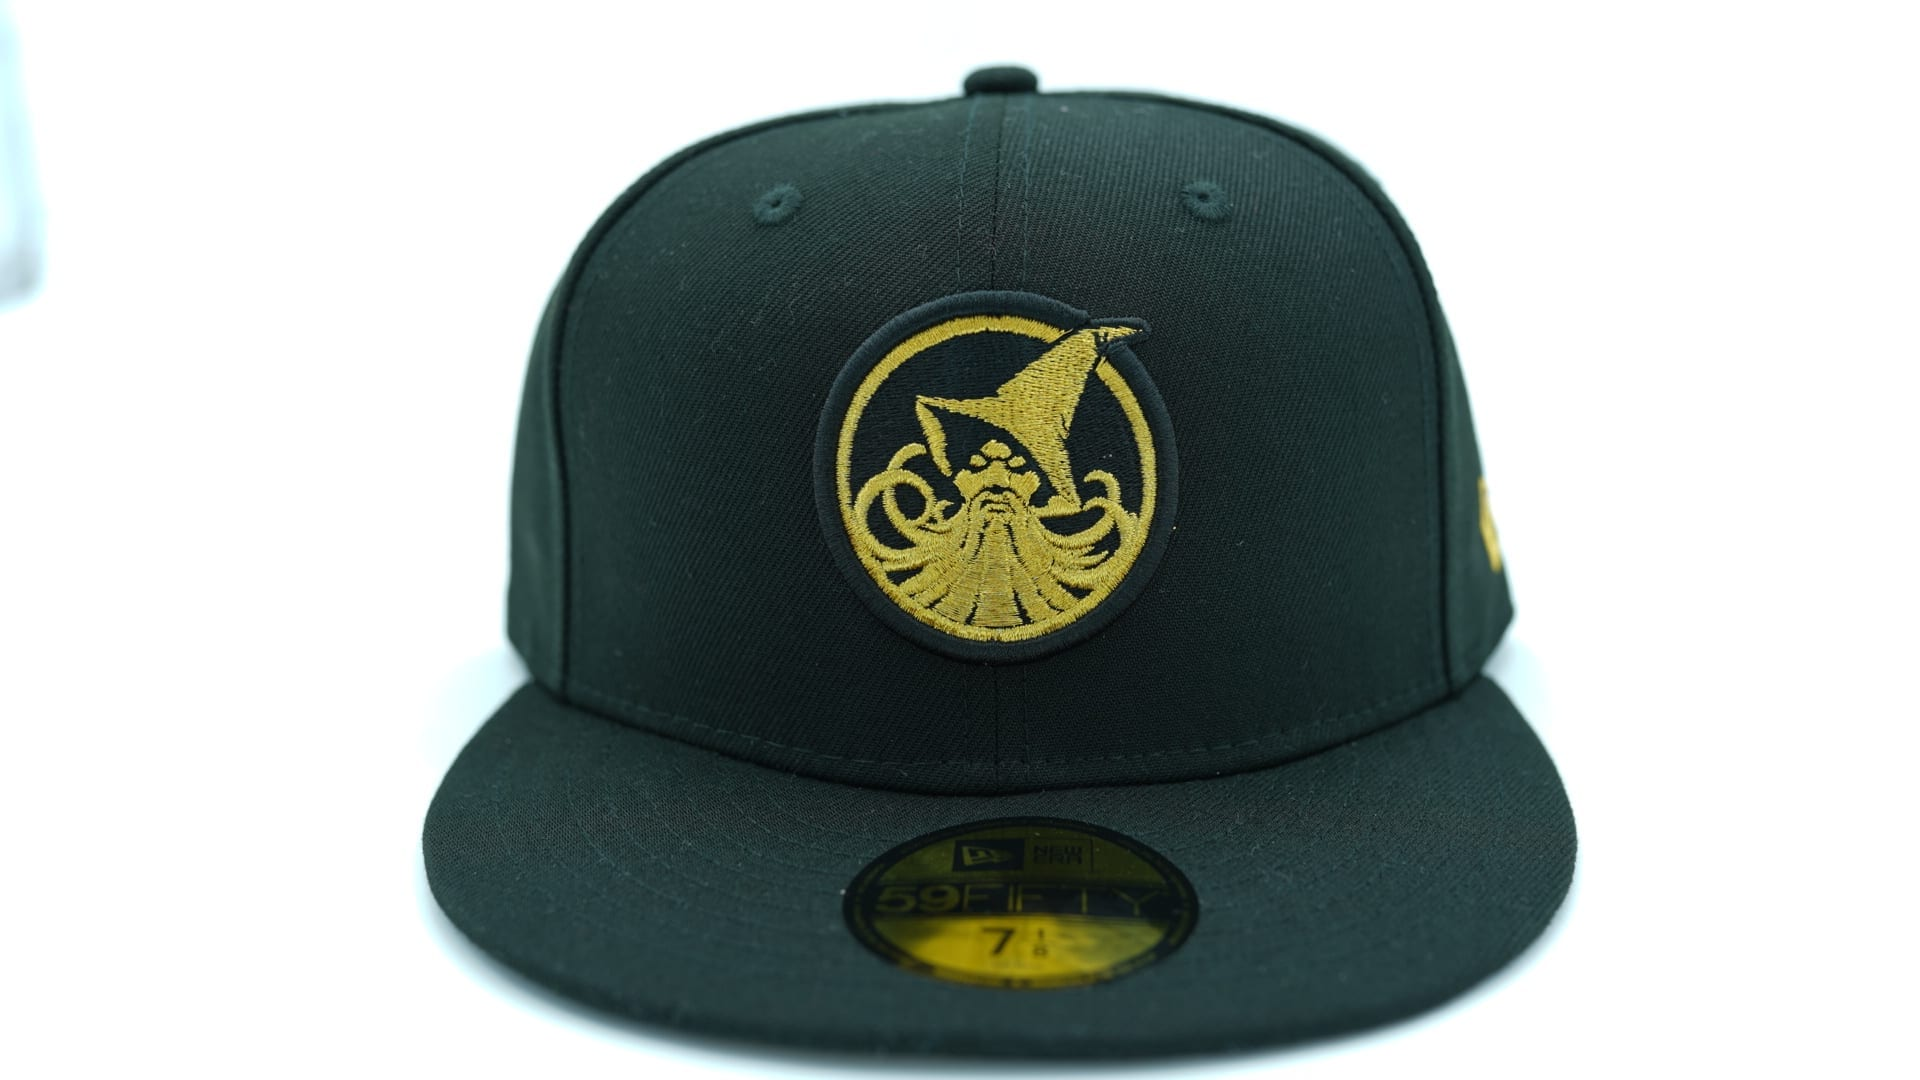 tc baseball hat cap base left front panel raised grey embroidery white outline the features scion